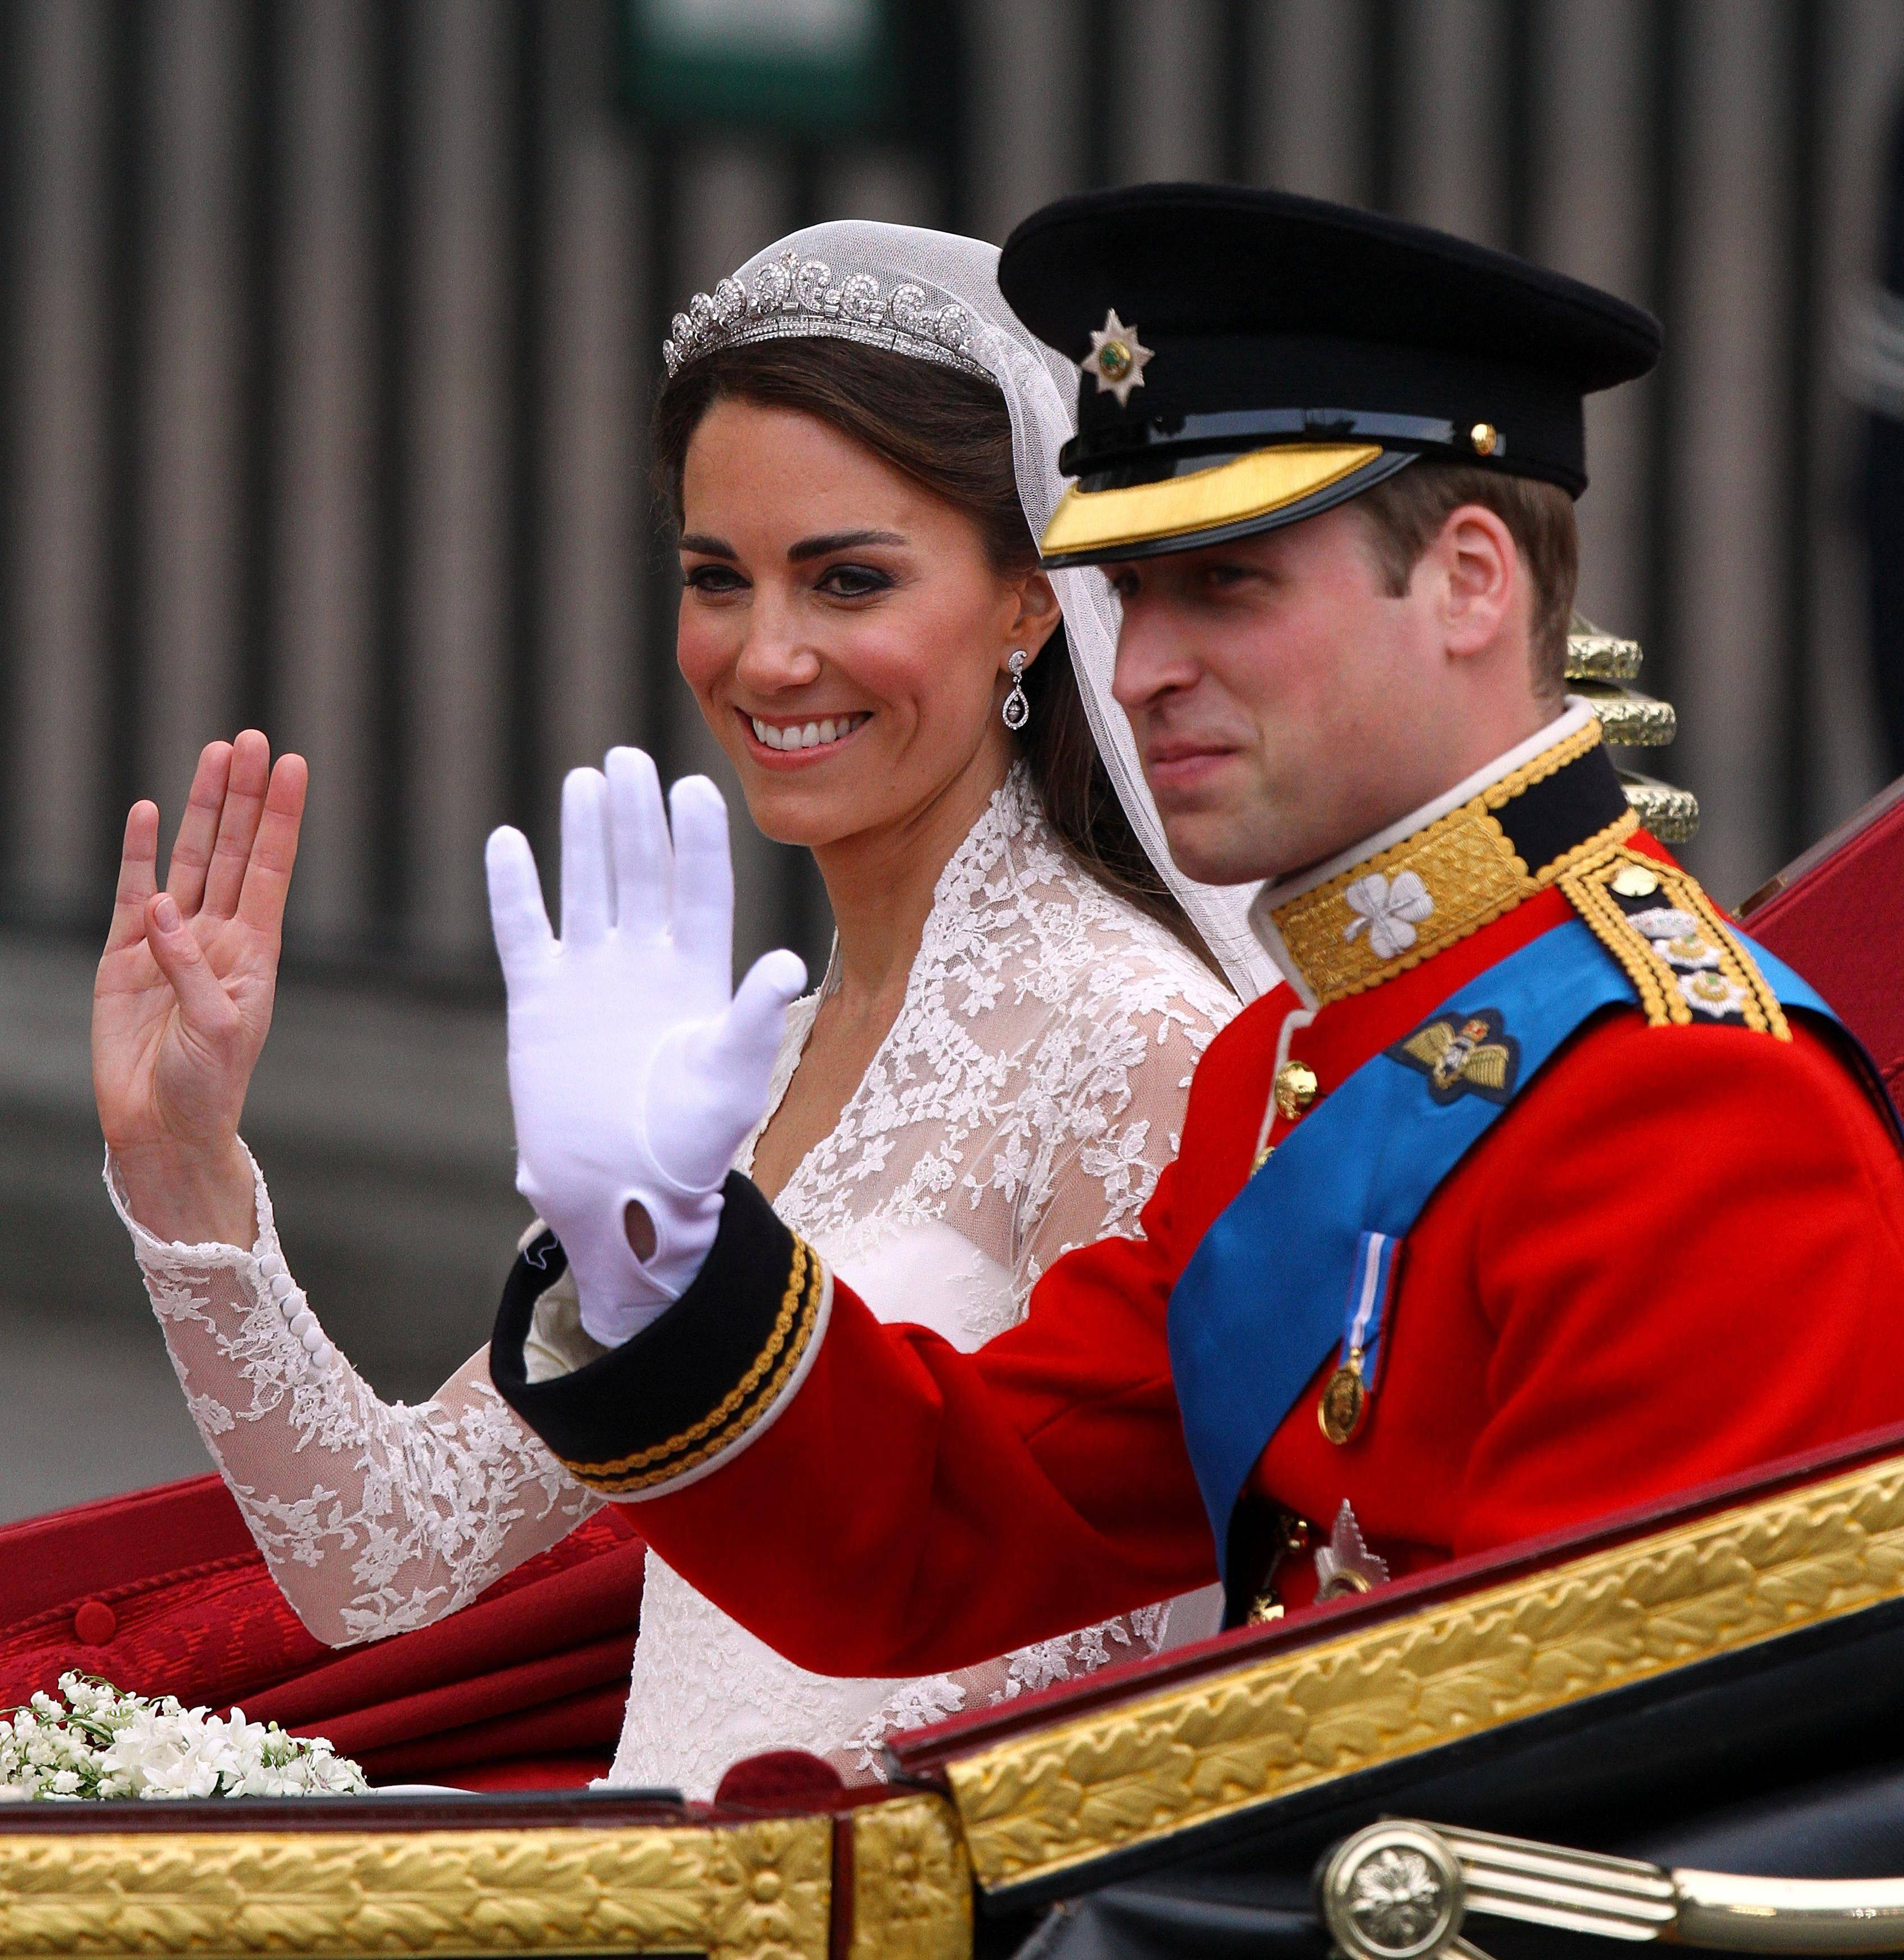 Prince William his bride Kate, Duchess of Cambridge, leave Westminster Abbey, London, following their wedding, Friday April. 29, 2011.